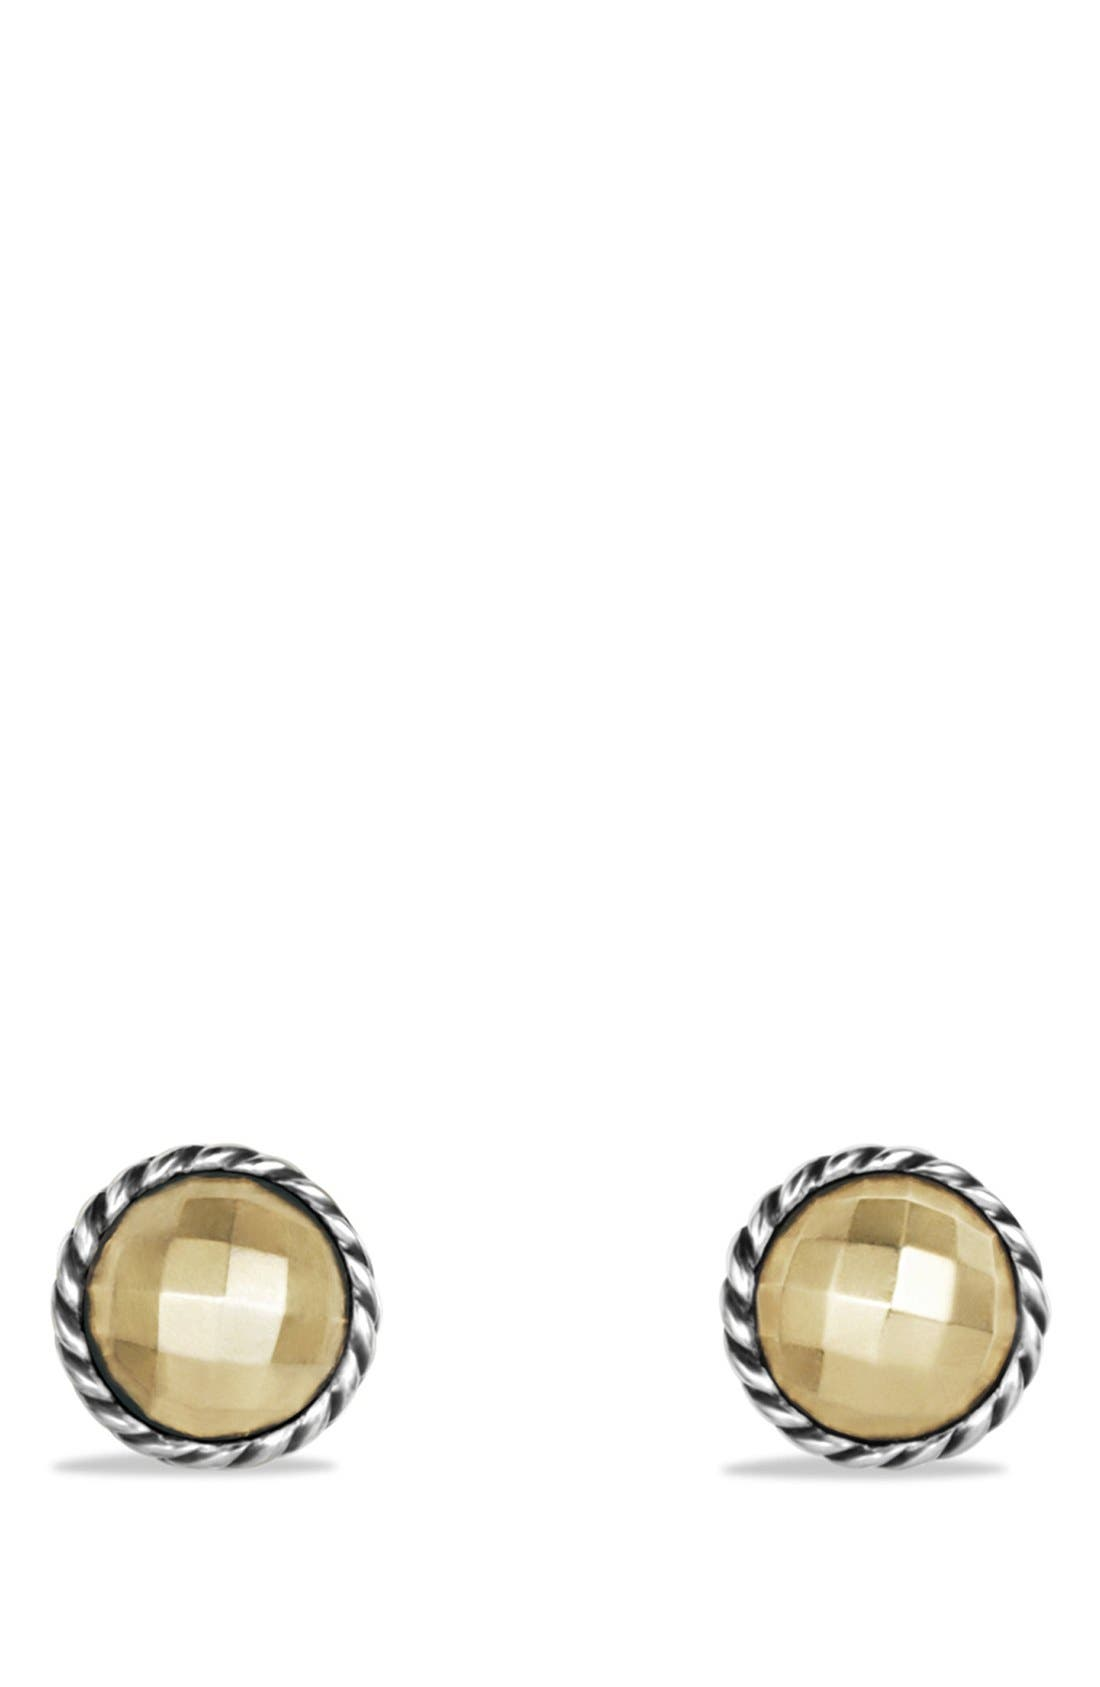 Alternate Image 1 Selected - David Yurman 'Châtelaine' Earrings with Gold